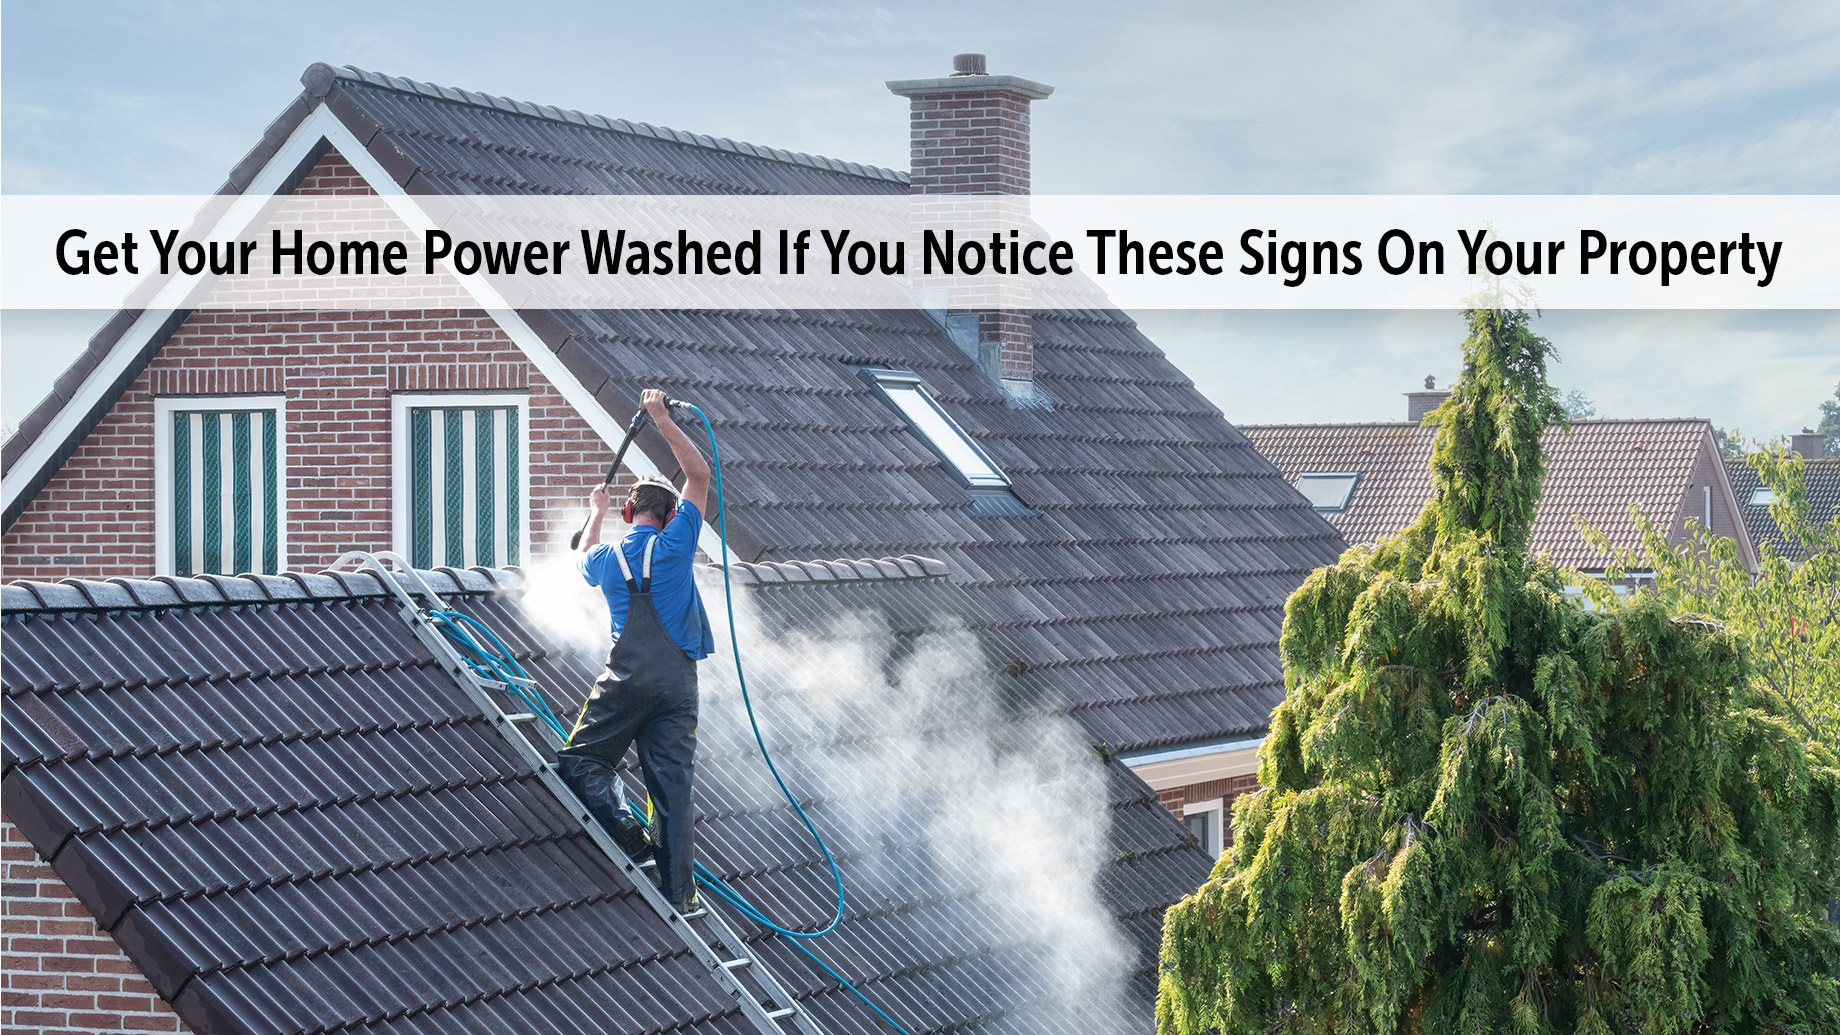 Get Your Home Power Washed If You Notice These Signs On Your Property